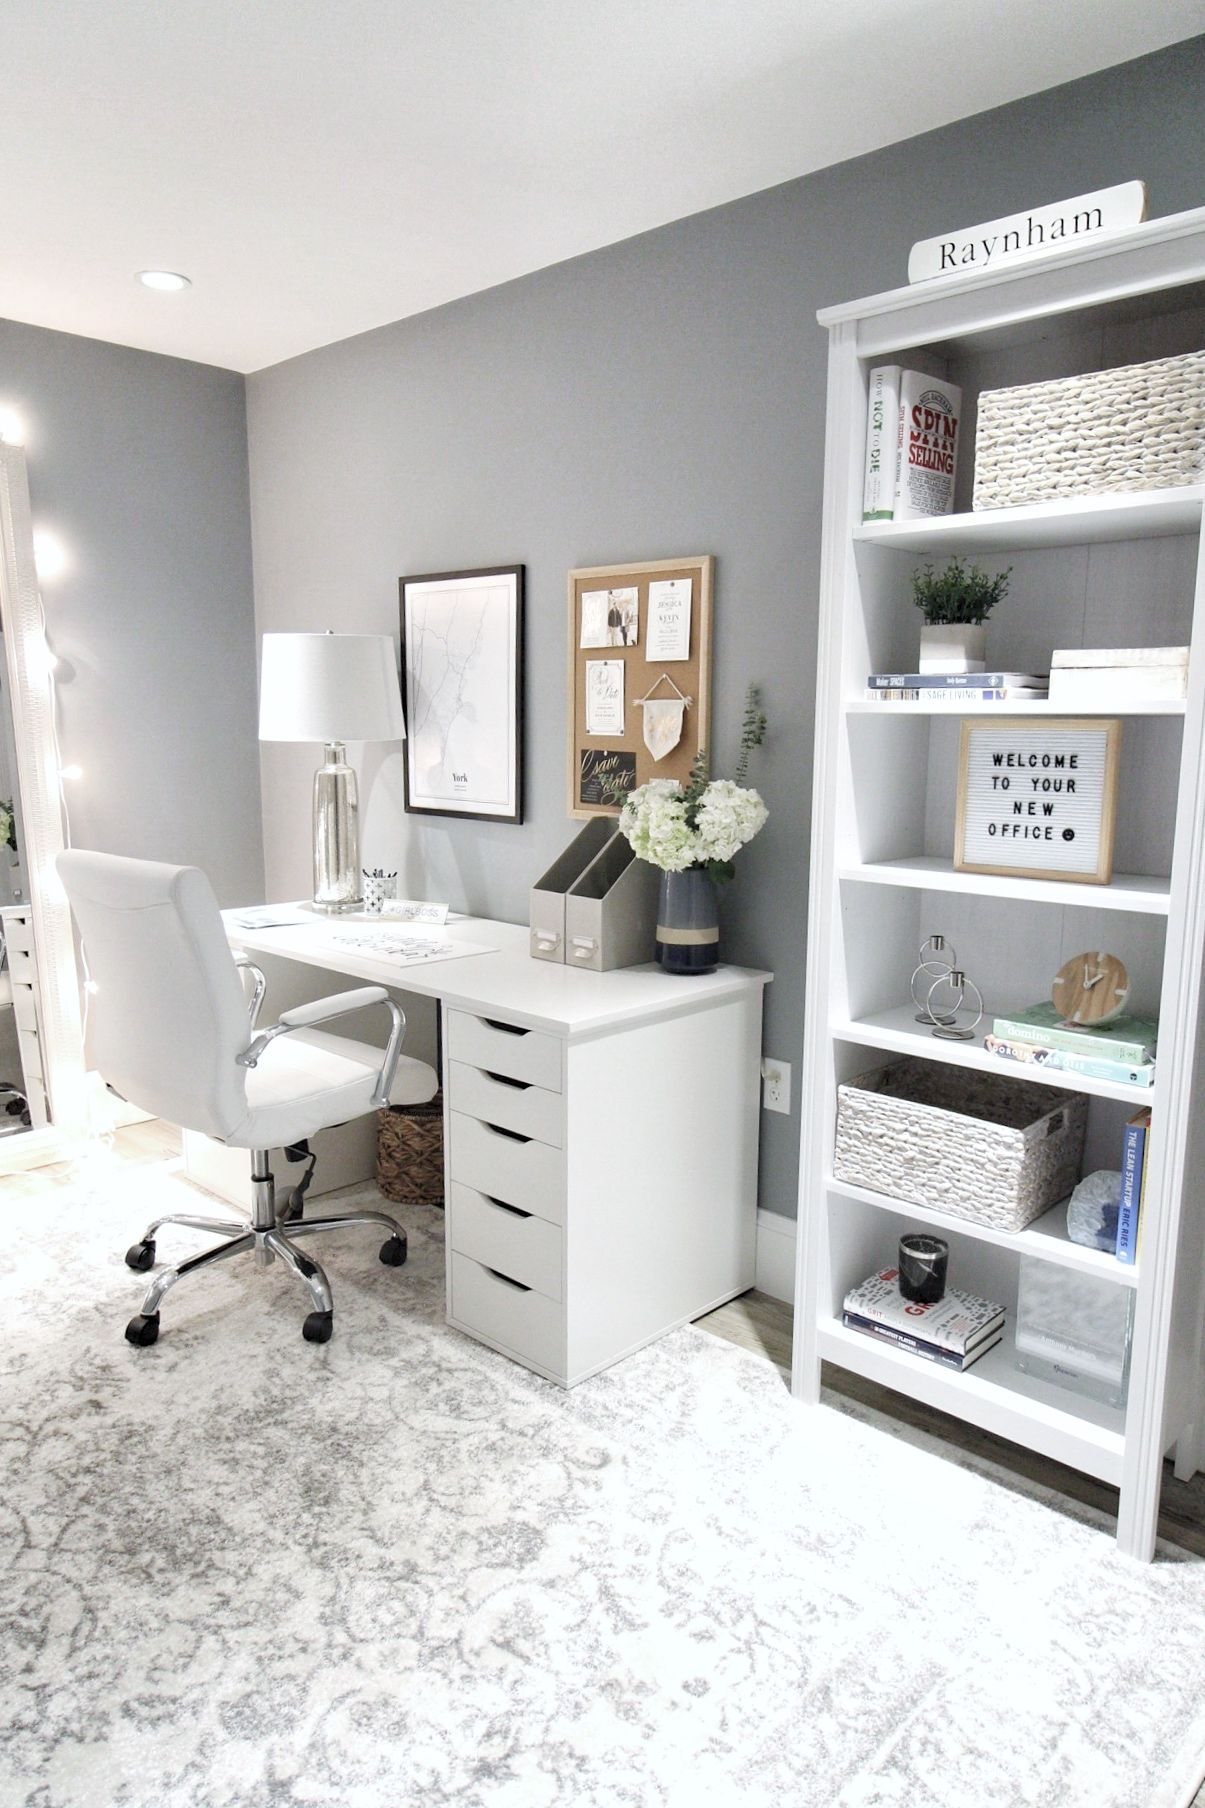 Home Office Ideas: Brilliant Hacks to Maximize Pro